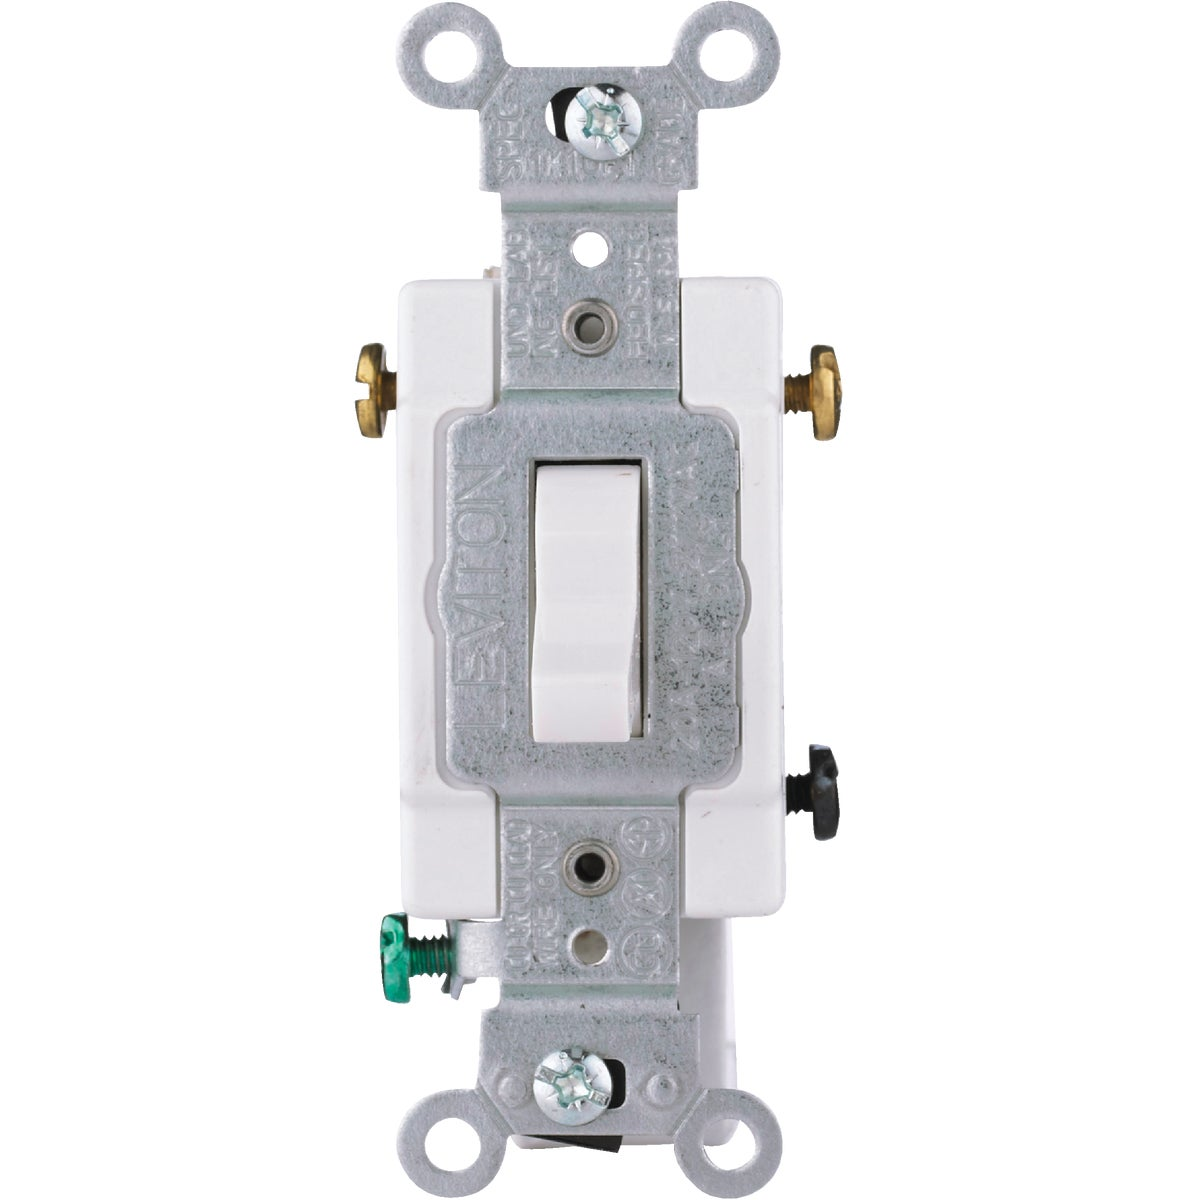 WHT 3-WAY GRND SWITCH